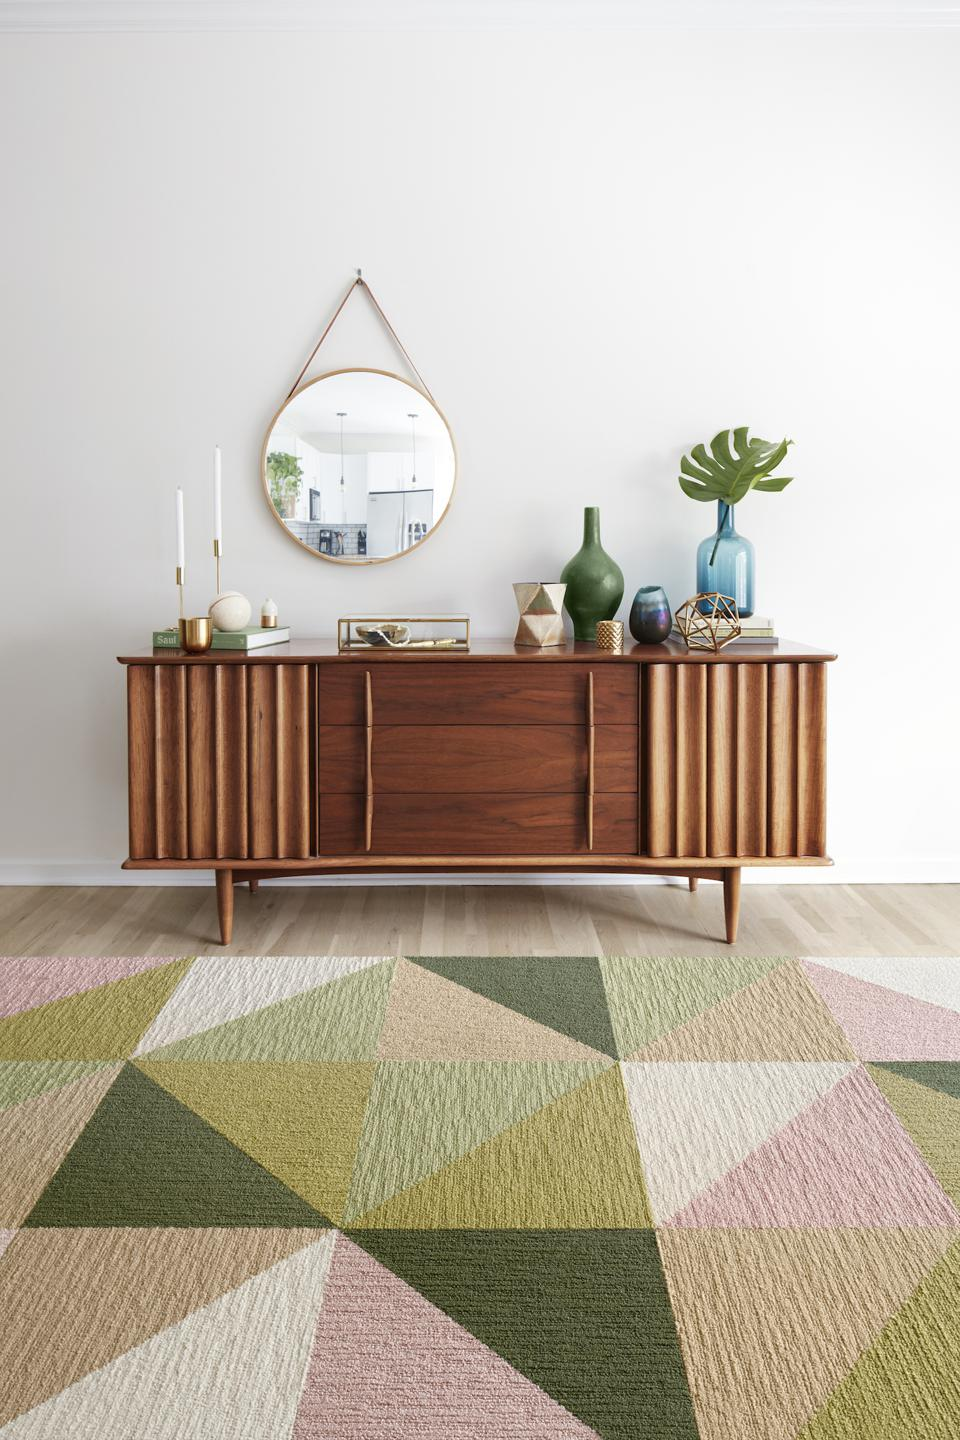 These multicolor FLOR tiles add an interesting look to this modern room design.